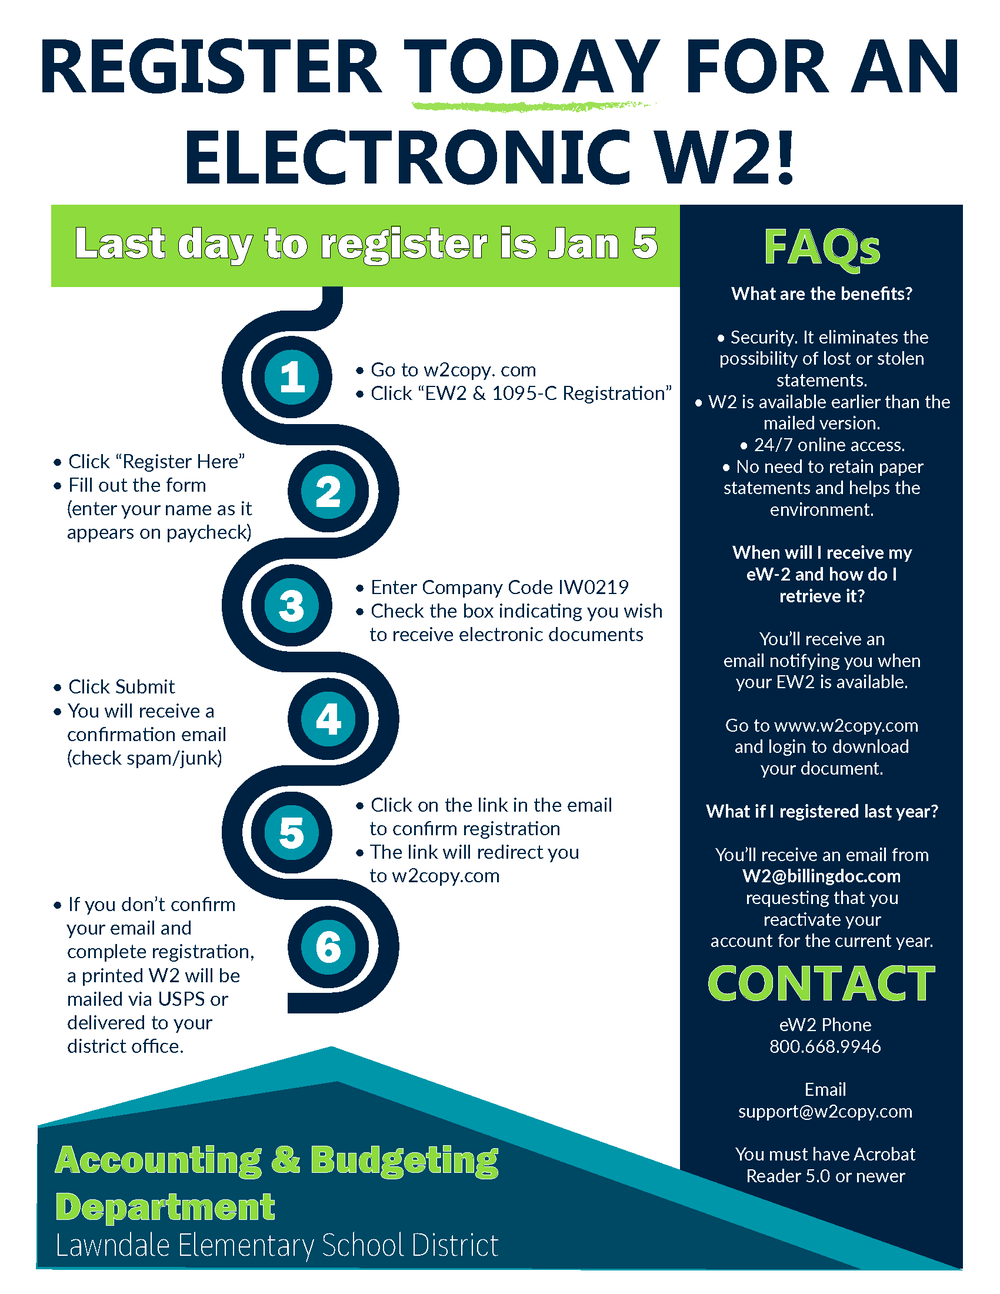 Electronic W2 flyer